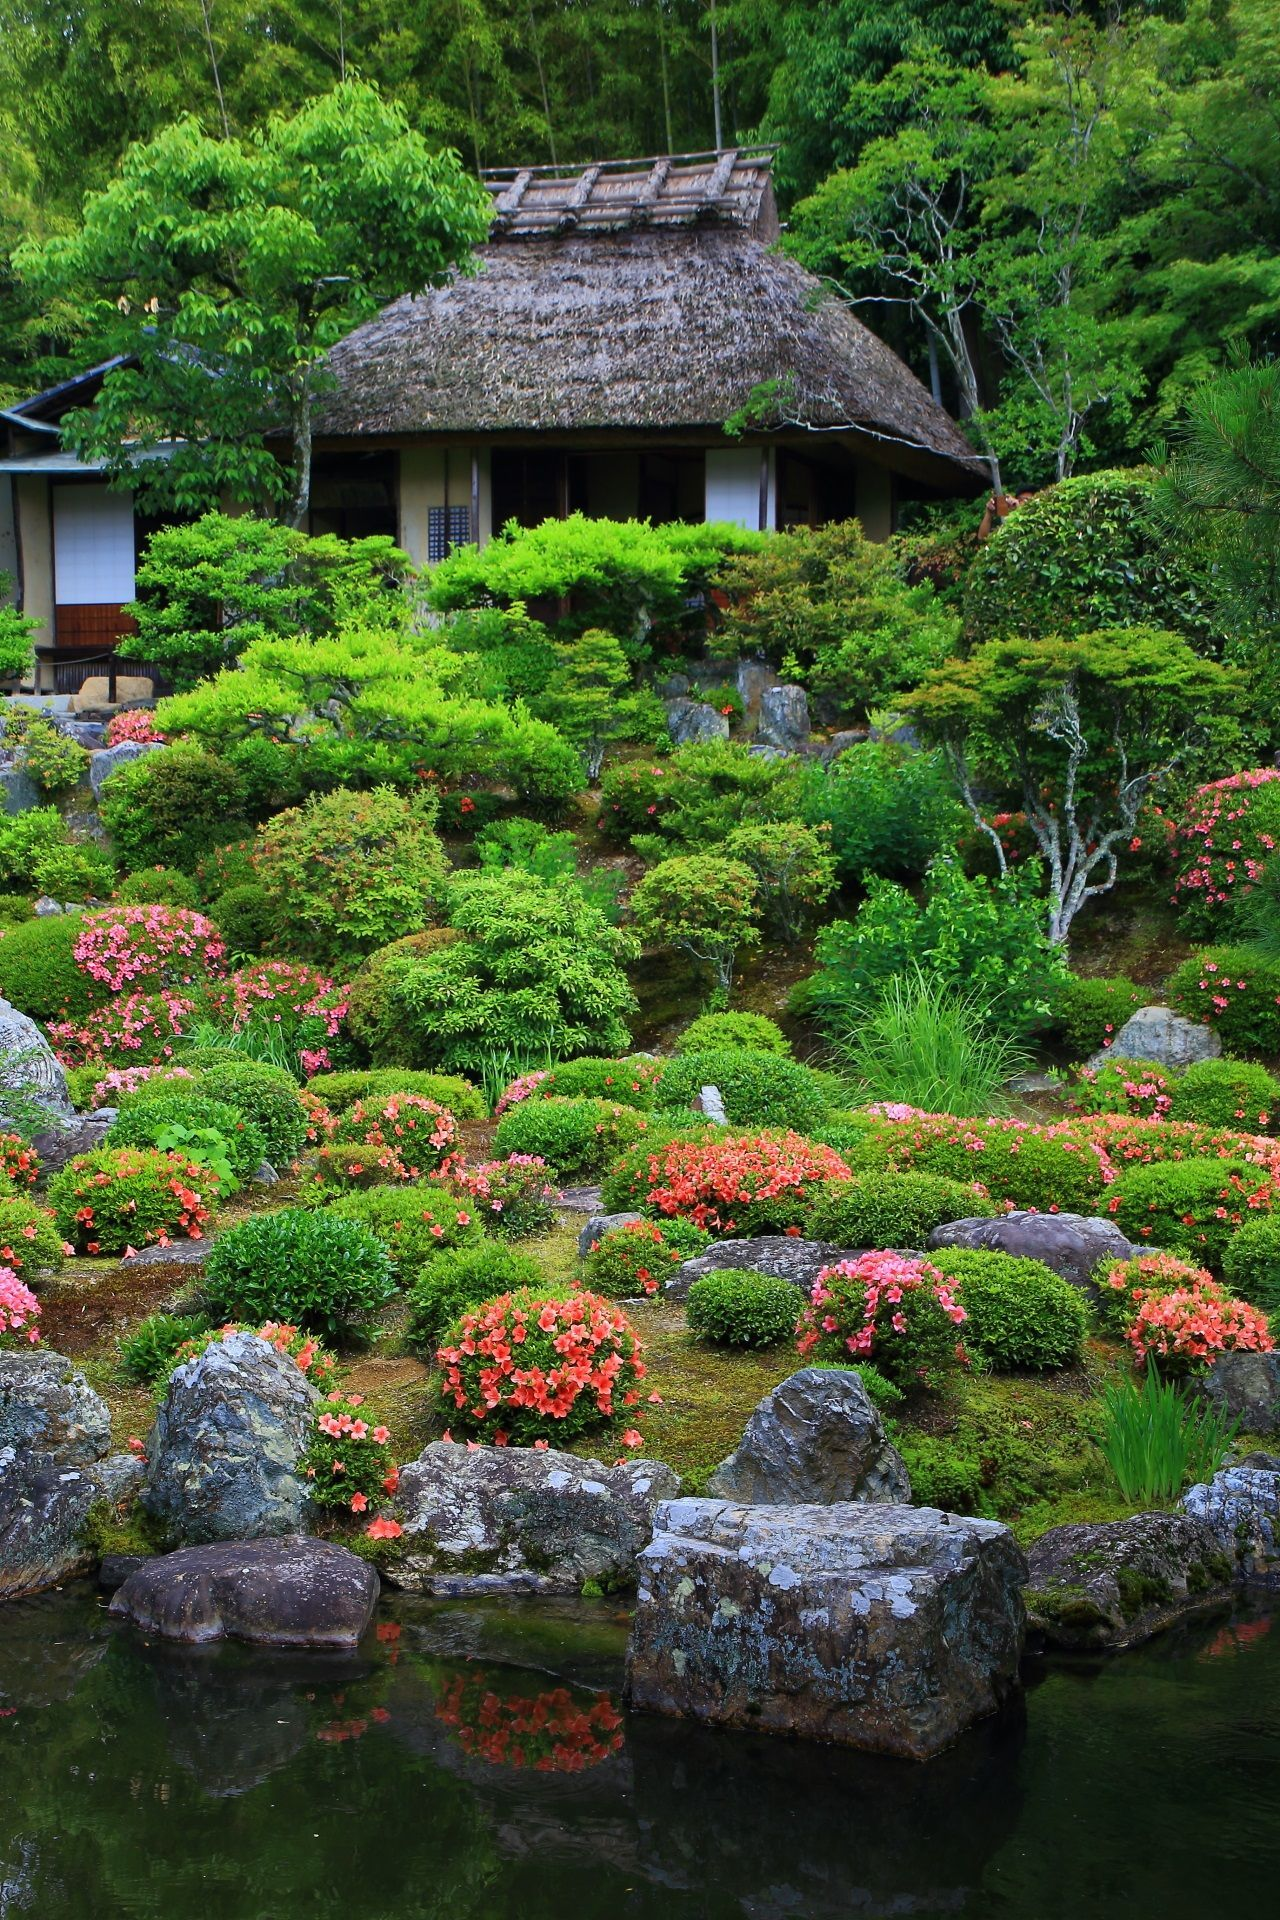 Azalea And Green Tojiin Temple In Kyoto,Japan